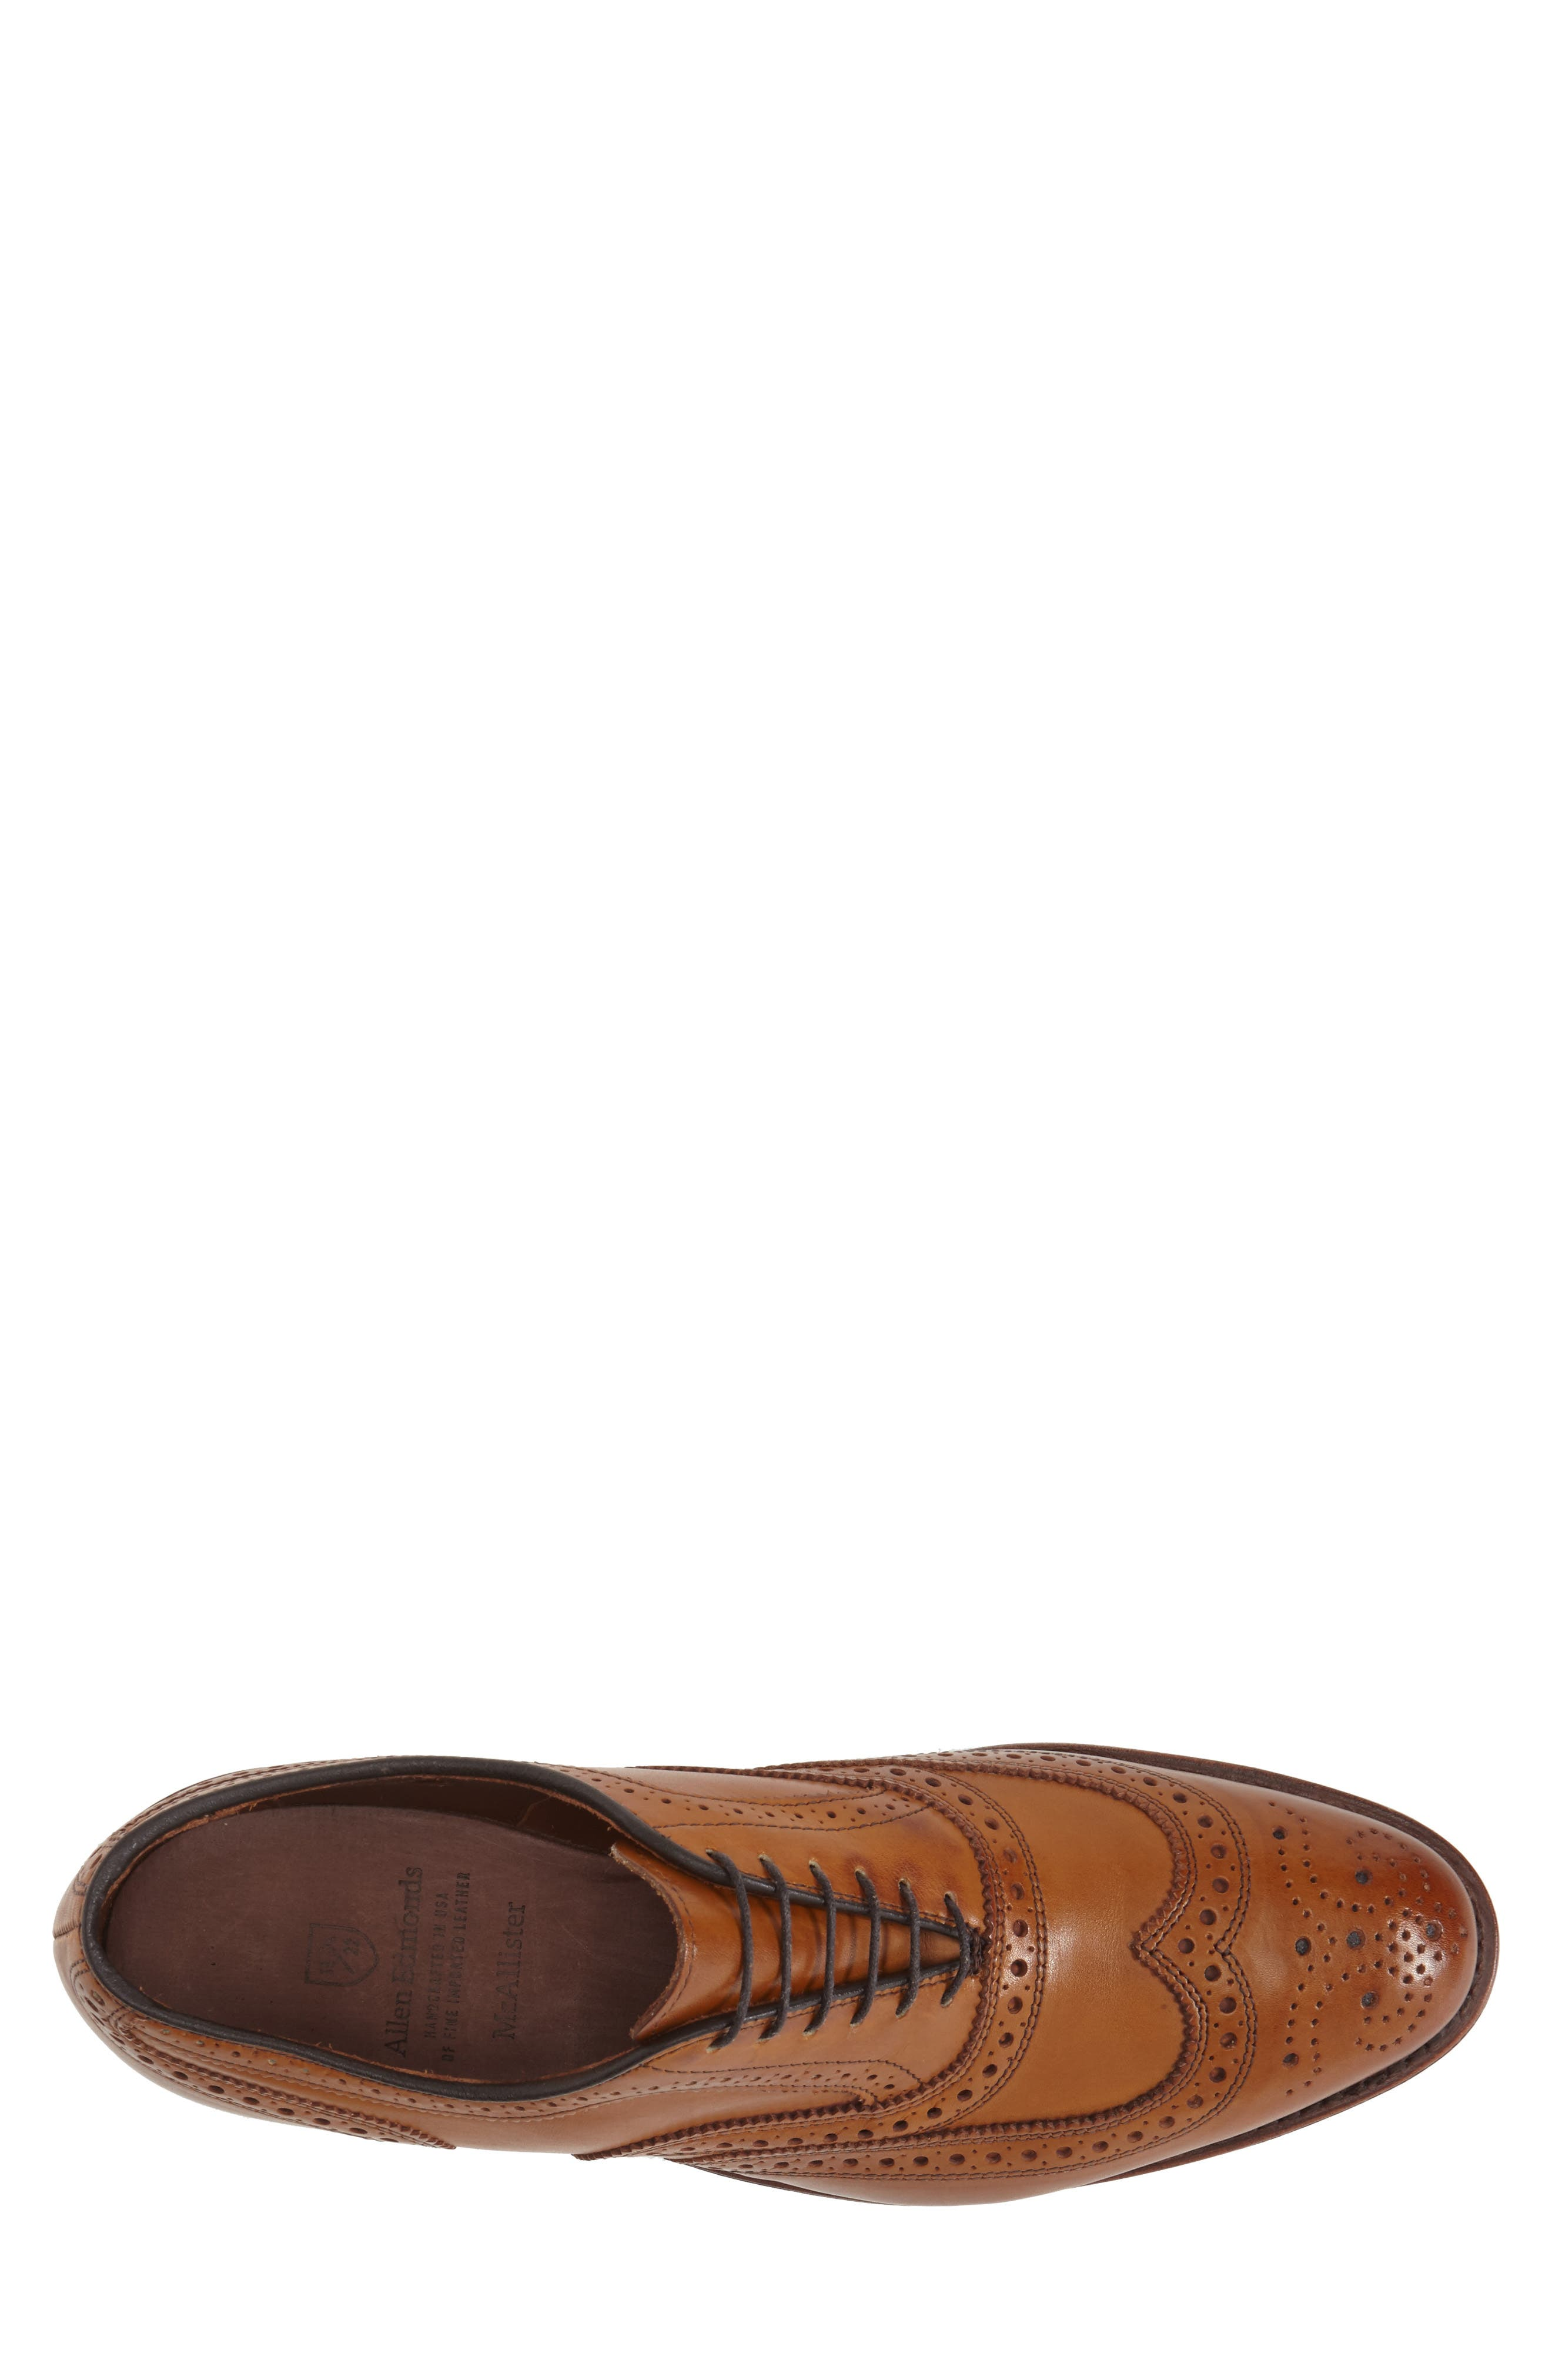 'McAllister' Wingtip,                             Alternate thumbnail 5, color,                             WALNUT LEATHER